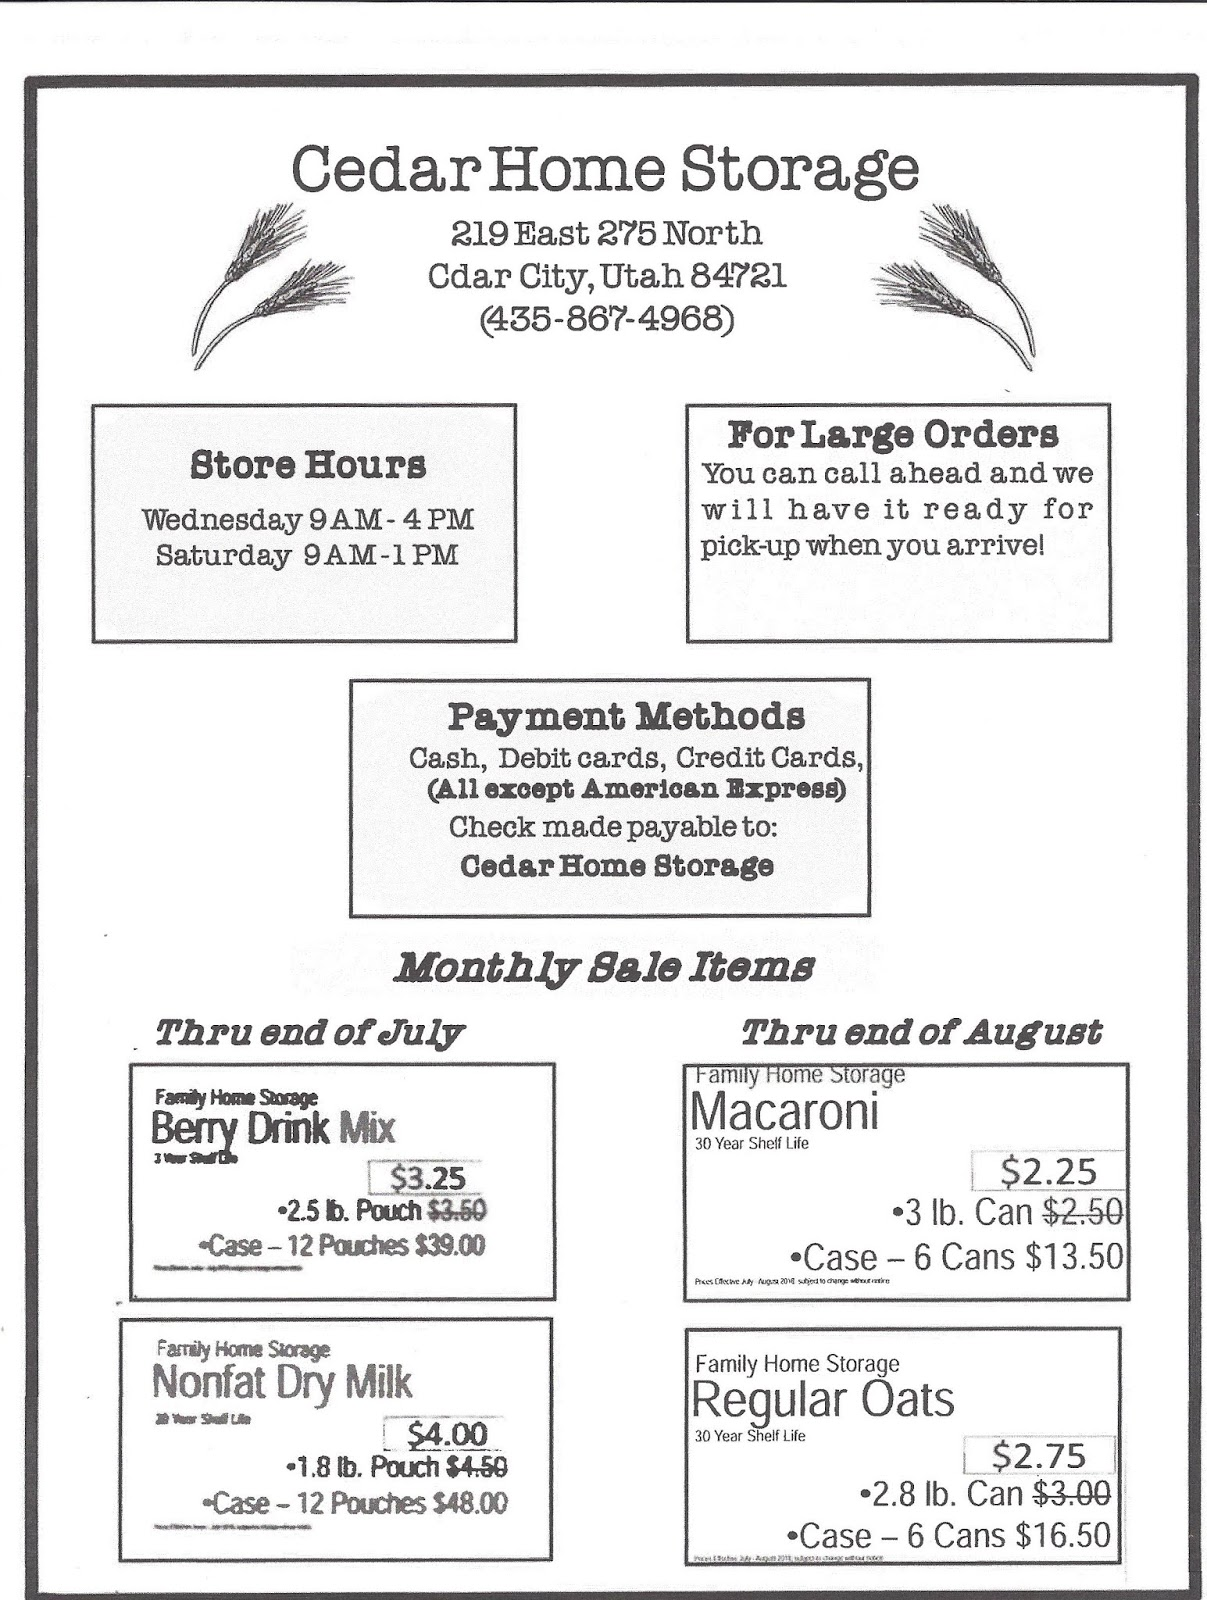 Below Is The Link For Ordering Food Storage Items At The Bishopu0027s  Storehouse In Cedar City.